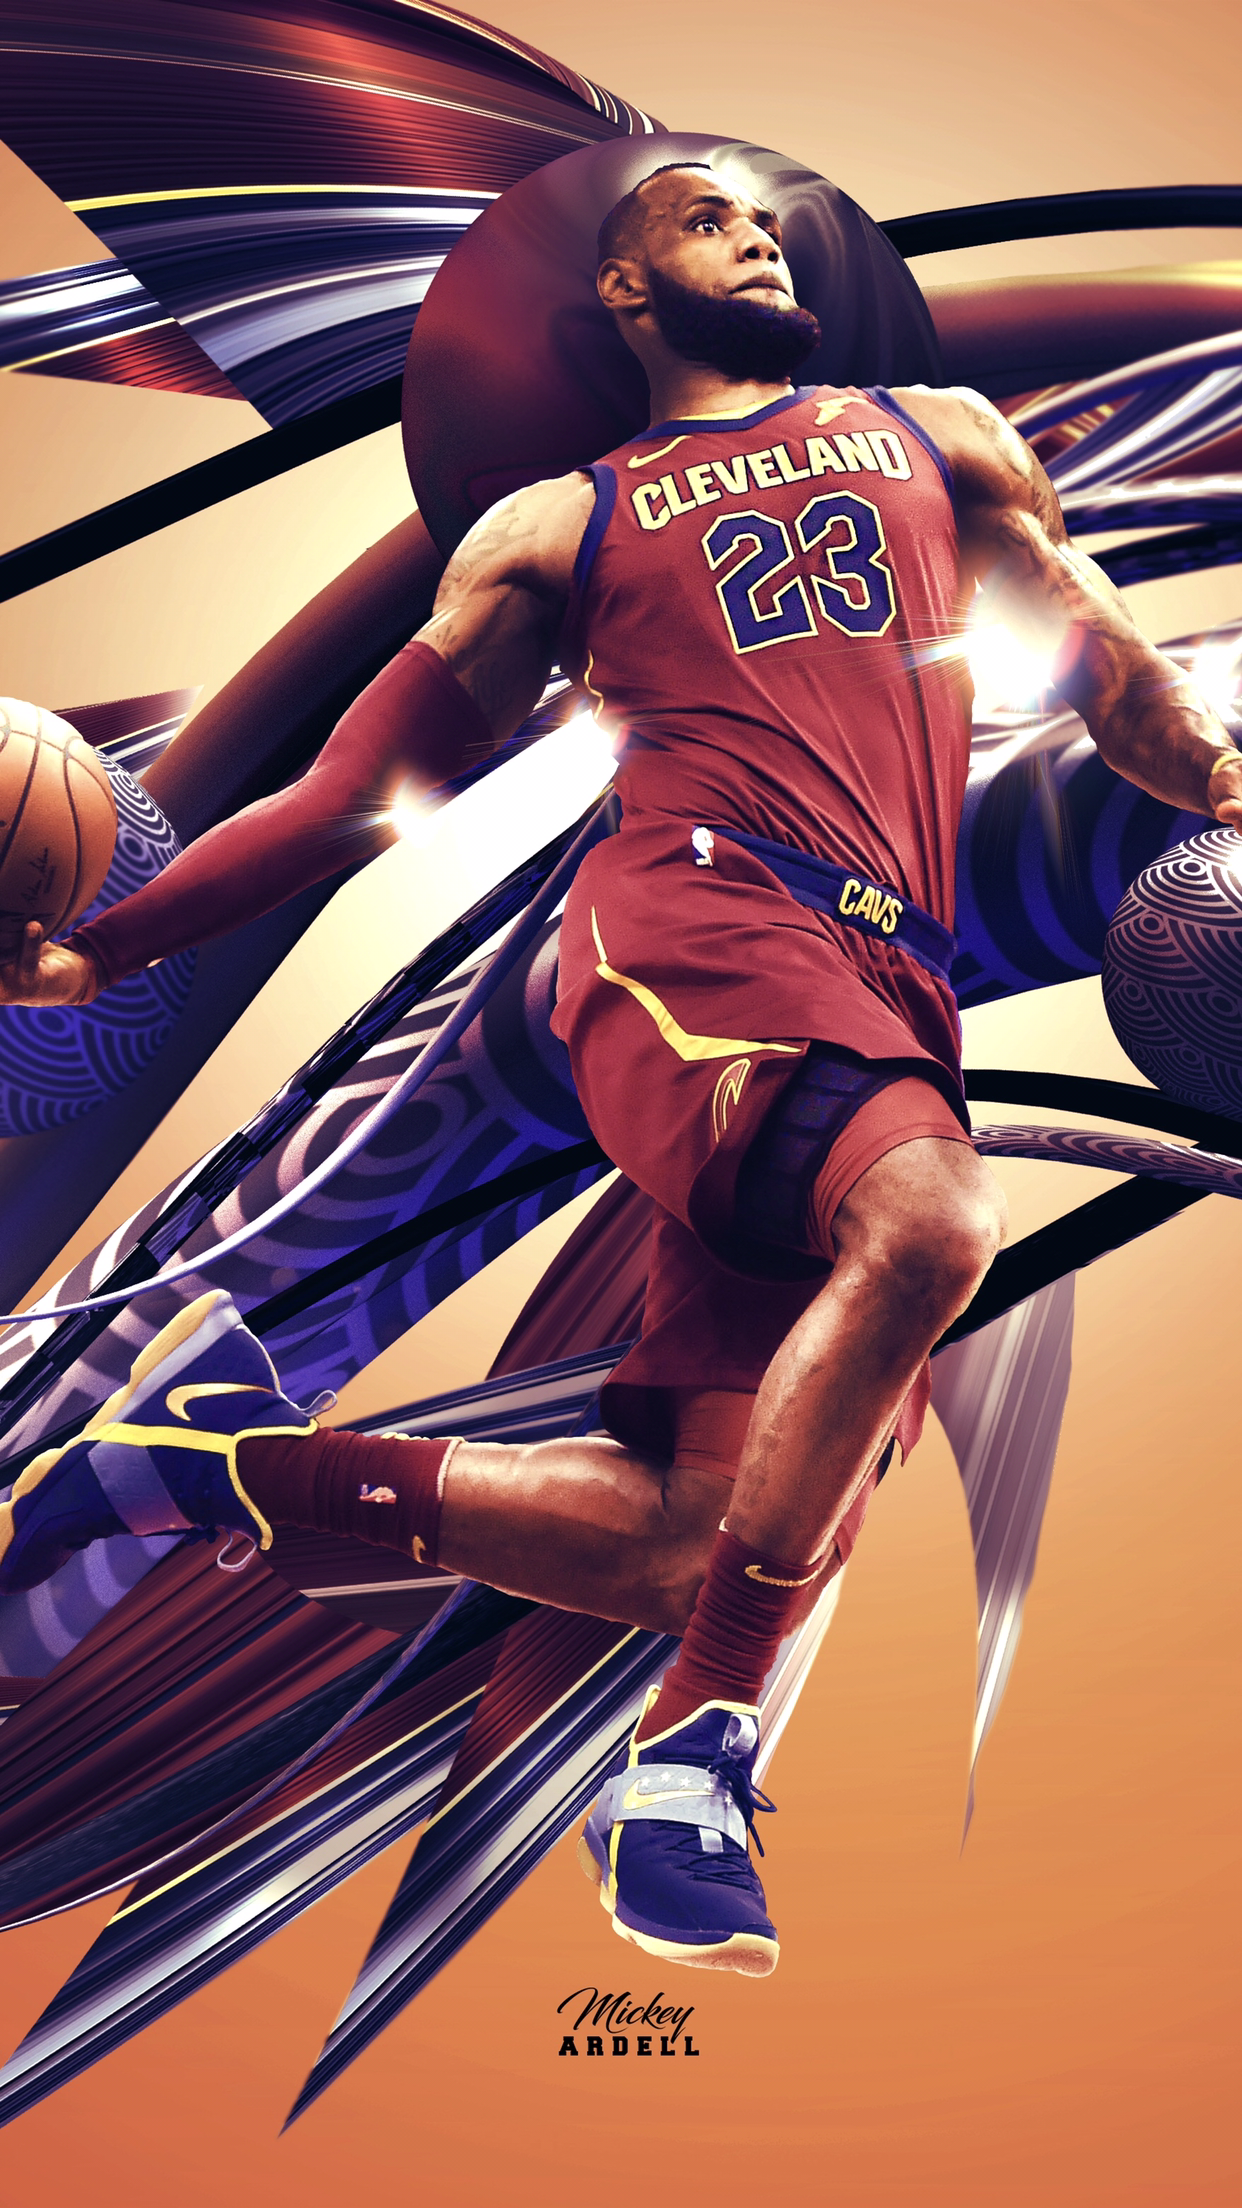 Lebron wallpaper NBA Art. wmcskills NBA Lebron james